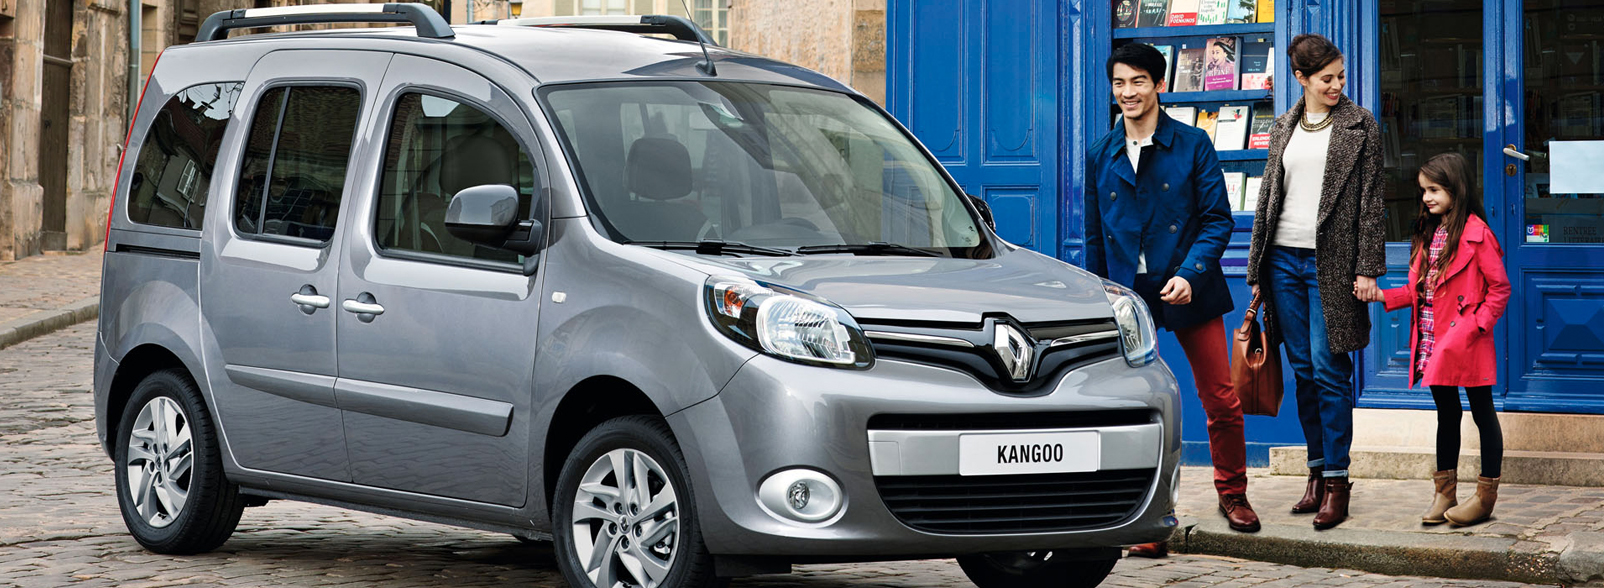 renault kangoo turismos. Black Bedroom Furniture Sets. Home Design Ideas